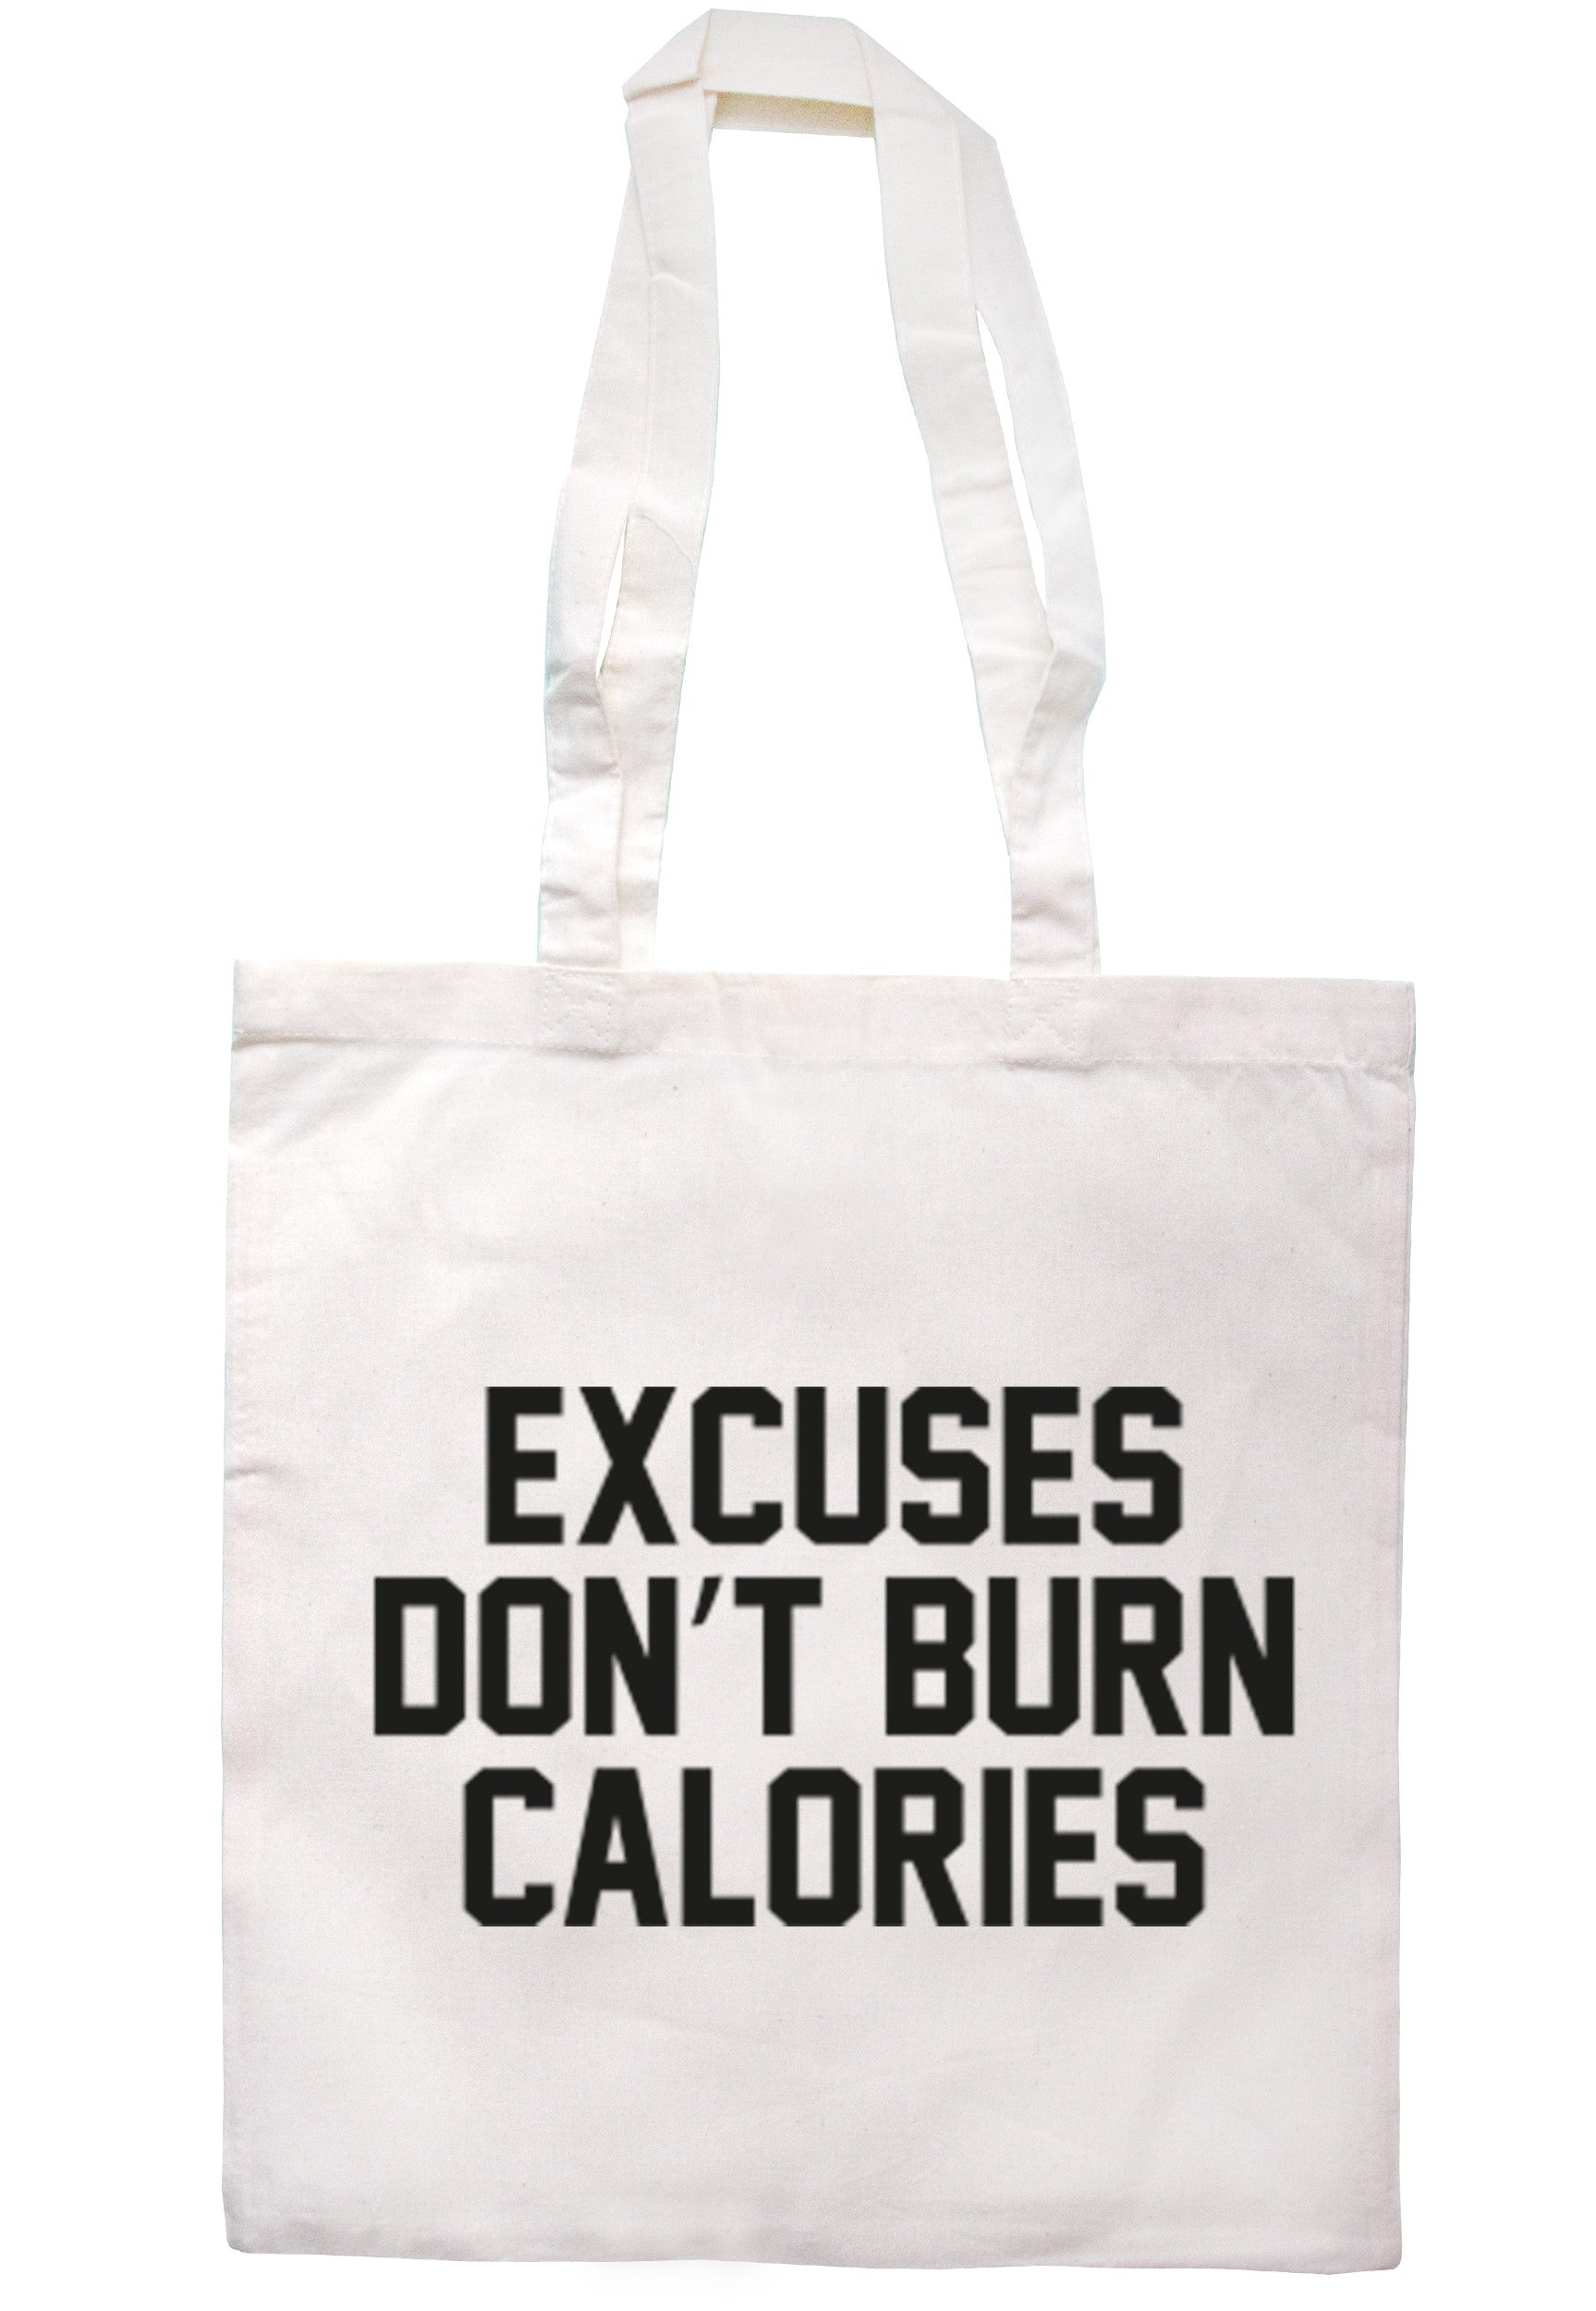 Excuses Don't Burn Calories Tote Bag TB0347 - Illustrated Identity Ltd.